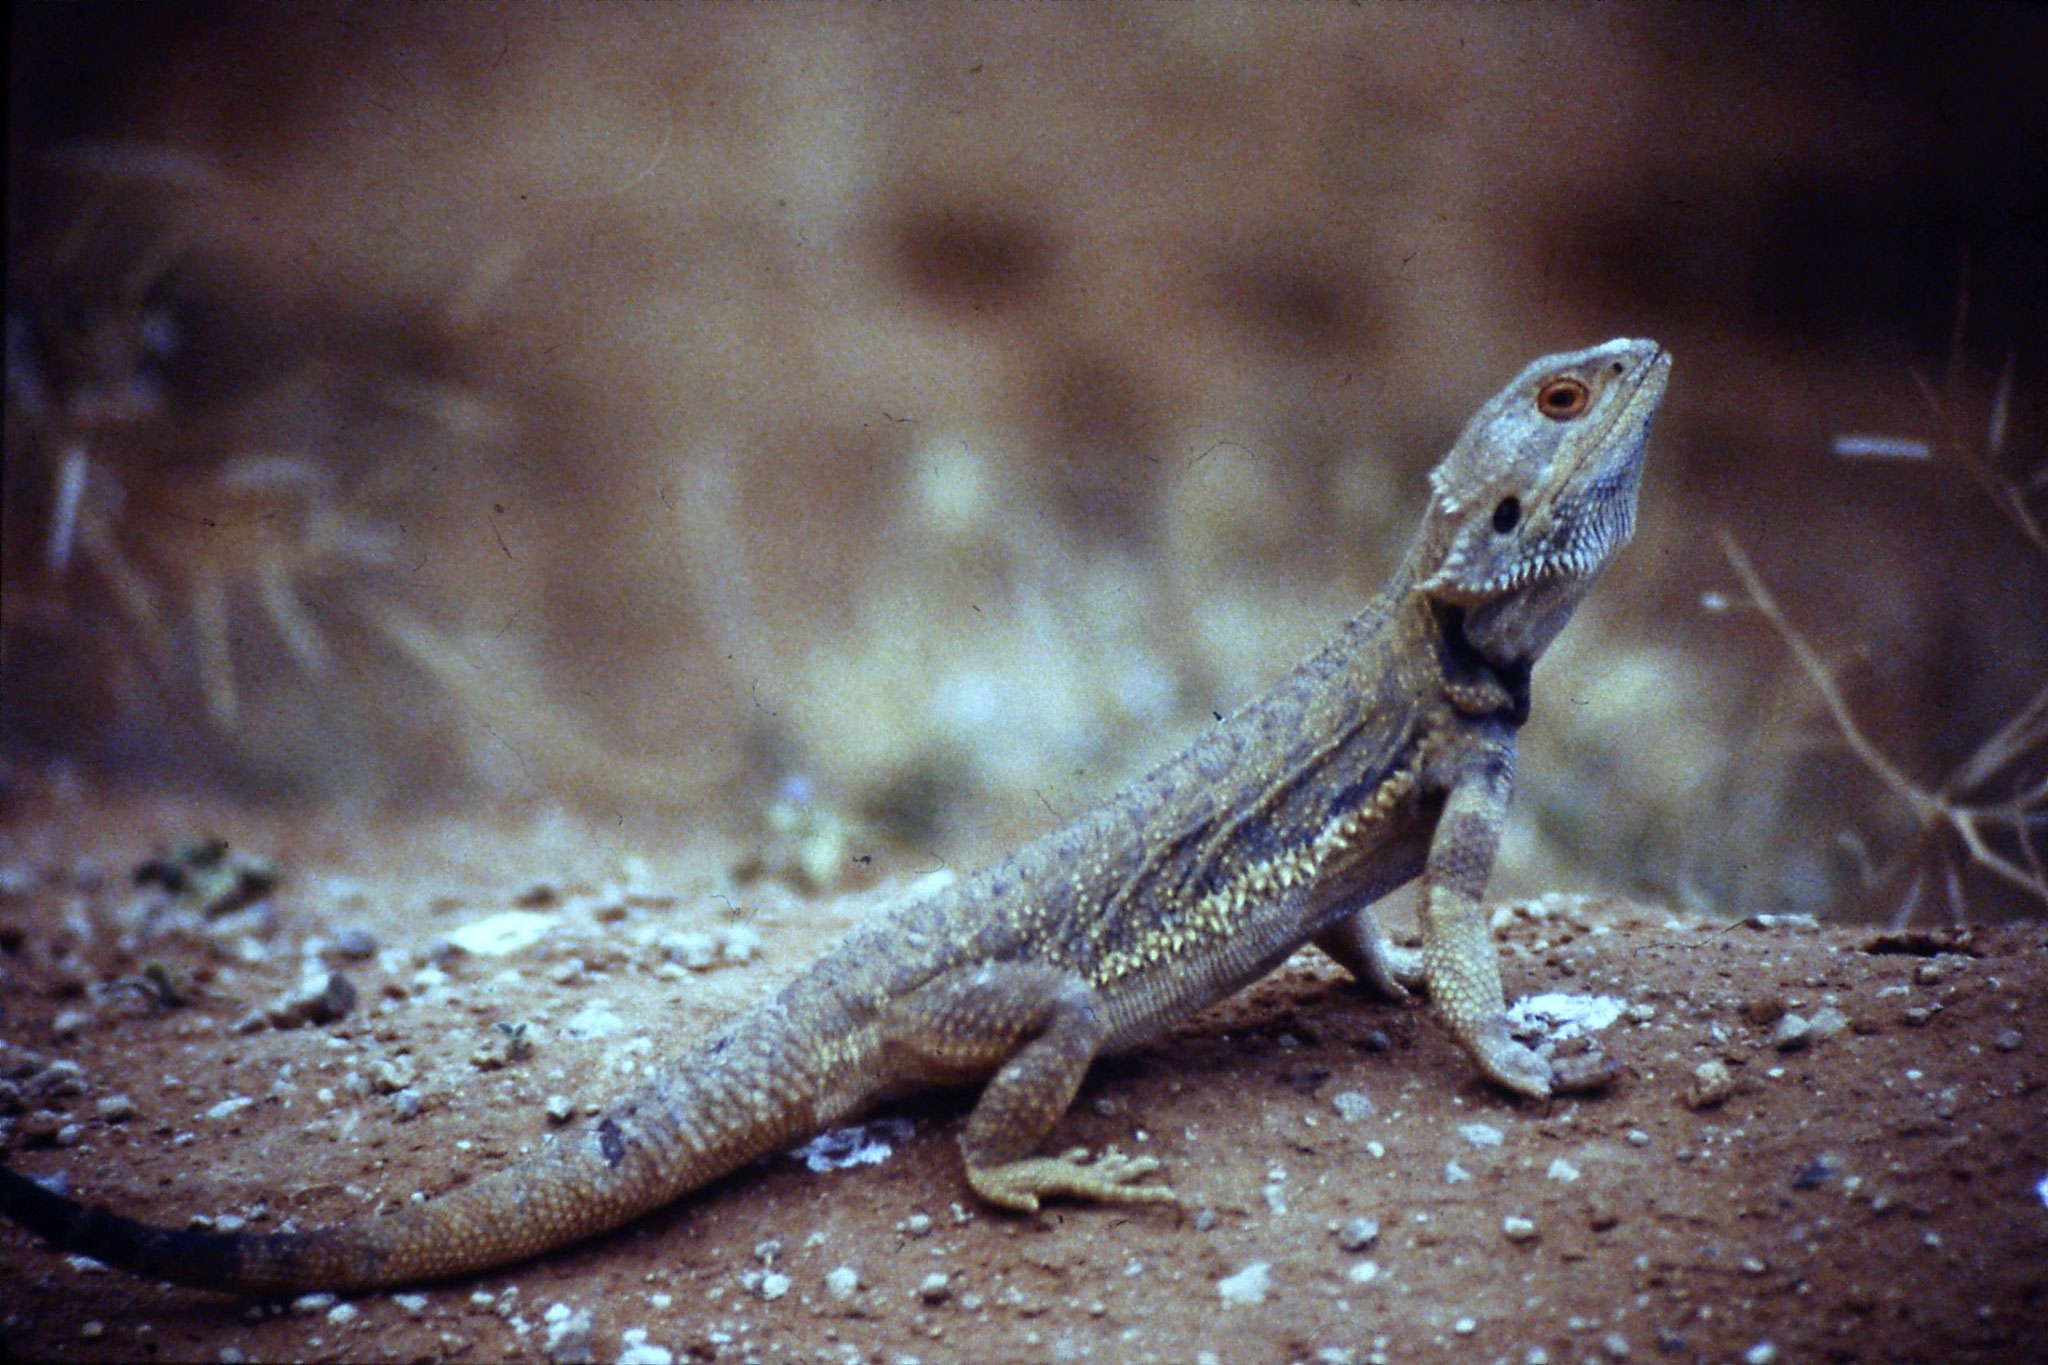 3/11/1990: 23: lizard 2ft near Merindee